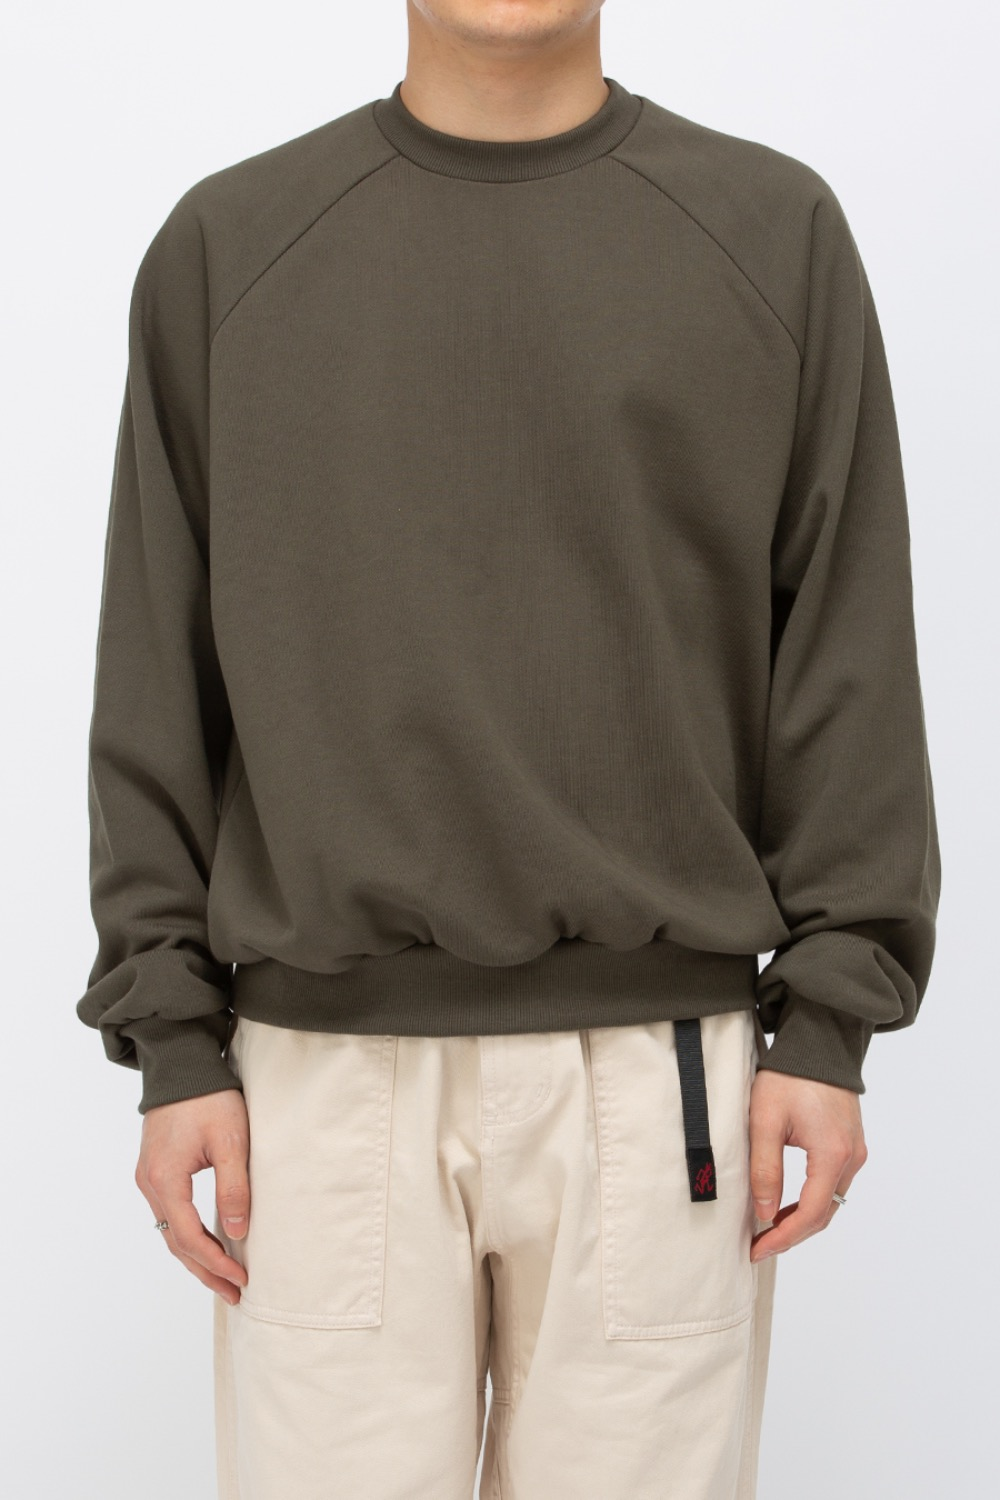 HEAVY WEIGHT OVERSIZE SWEATSHIRT(PREMIUM BASIC) OLIVE